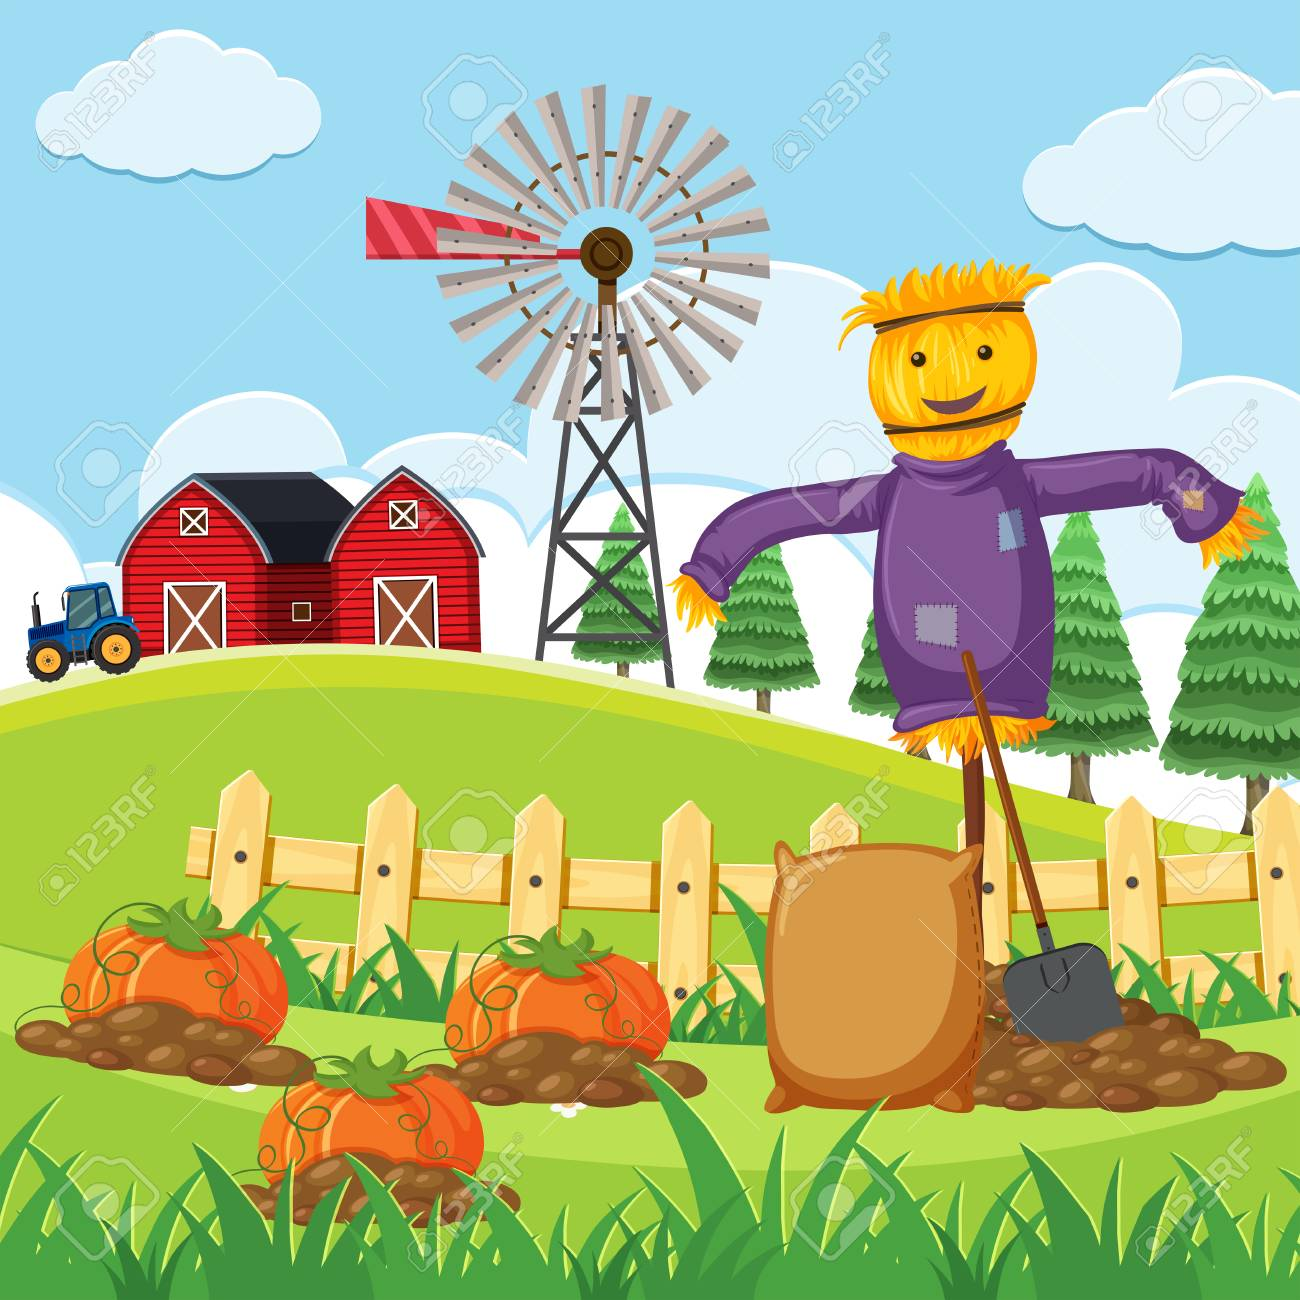 hight resolution of farm scene with pumpkin patch vector illustration stock vector 91332662